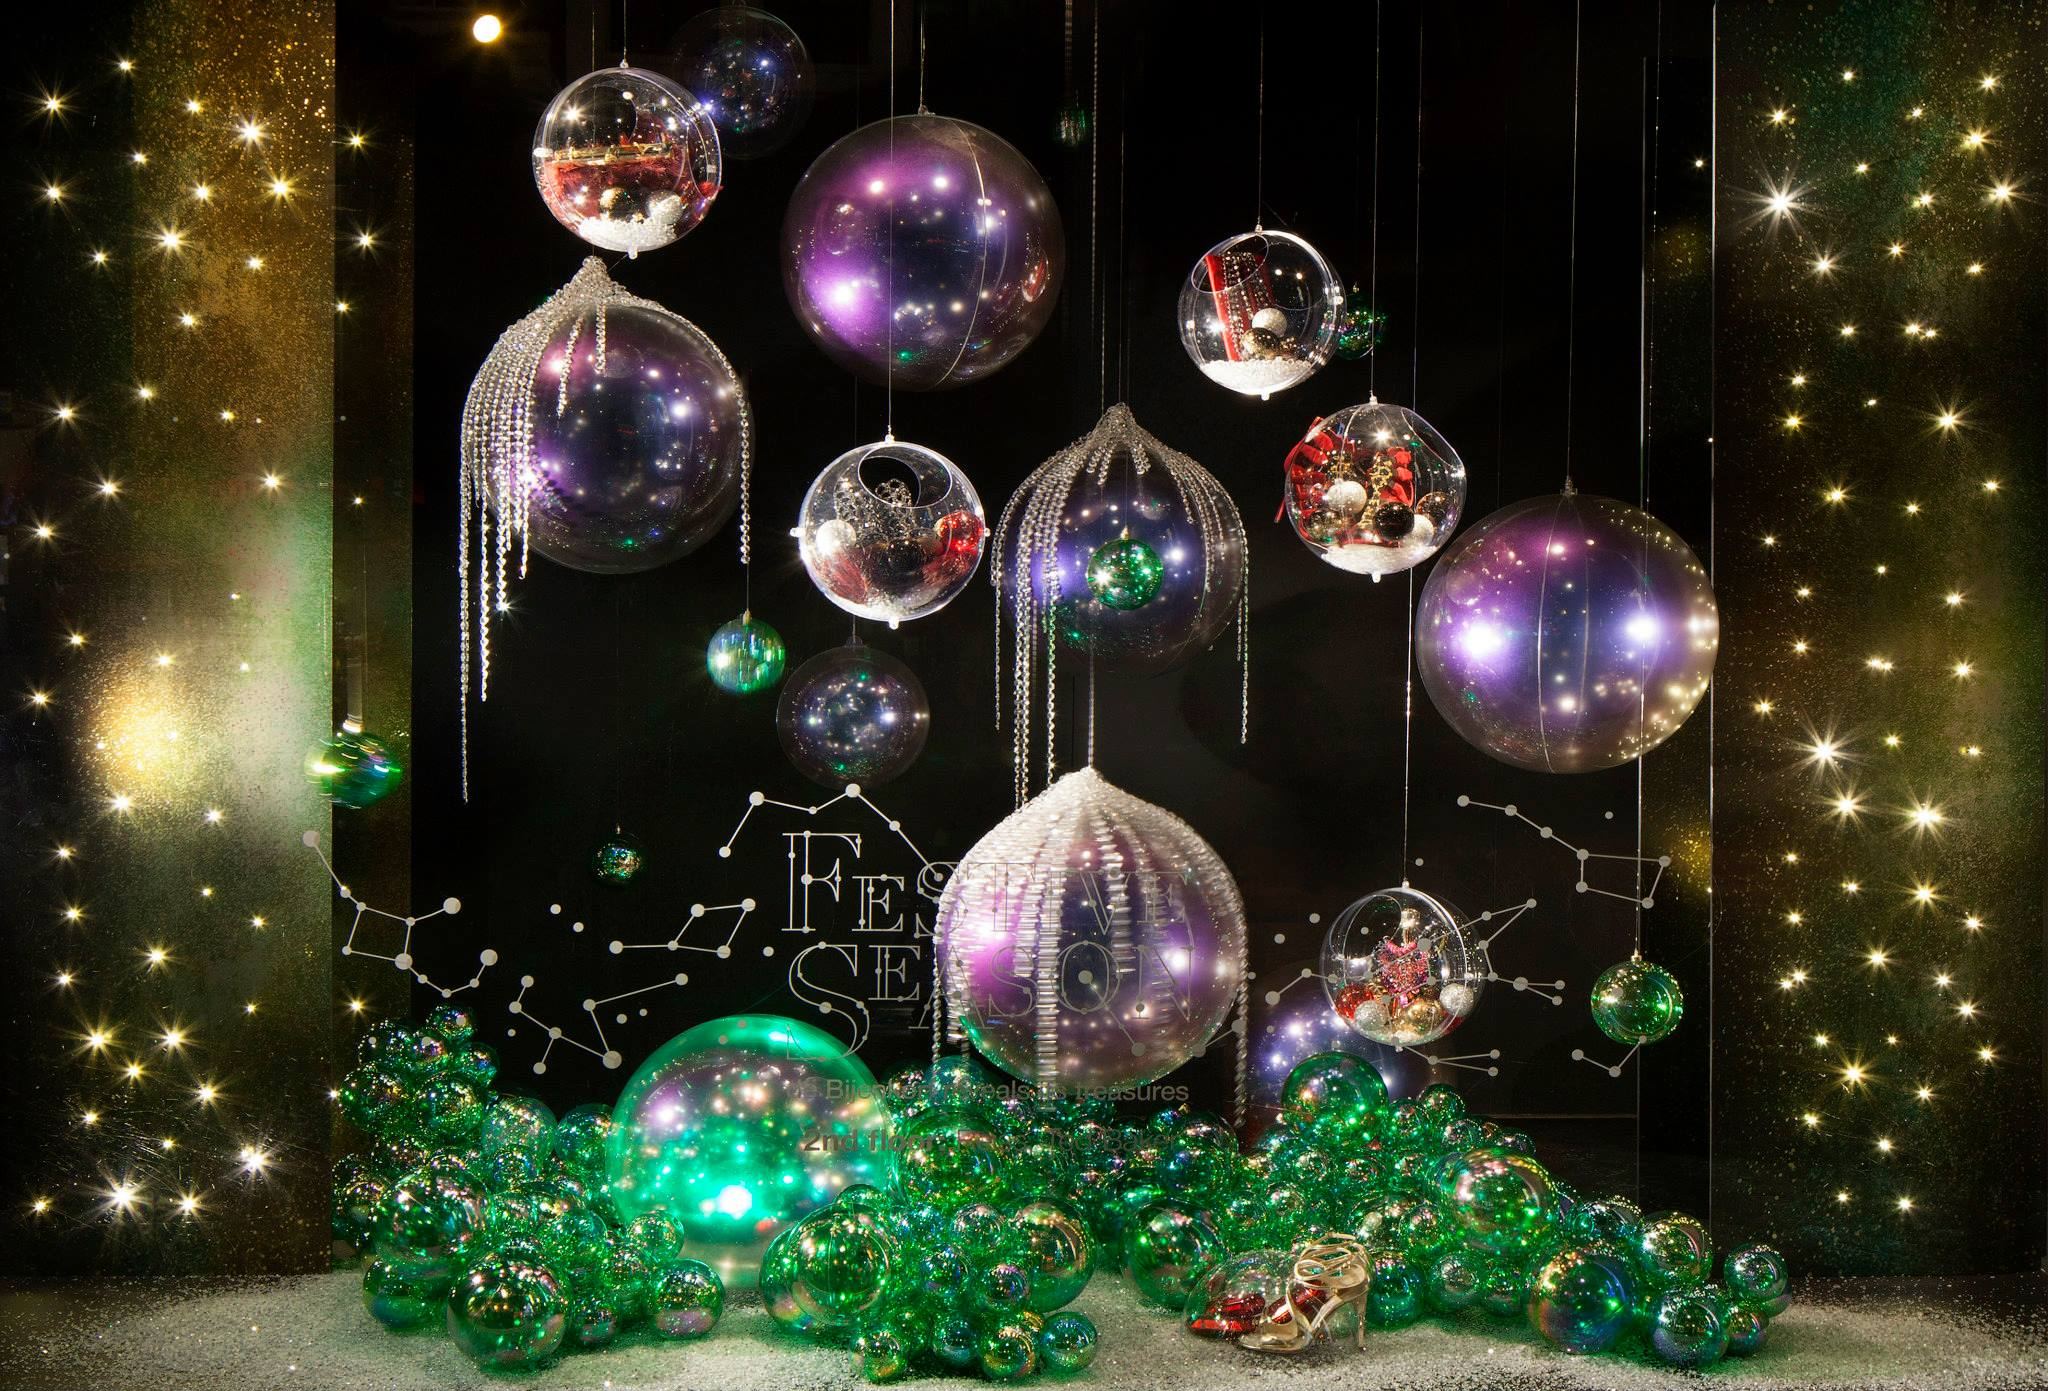 de bijenkorf festive season christmas window displays best window displays